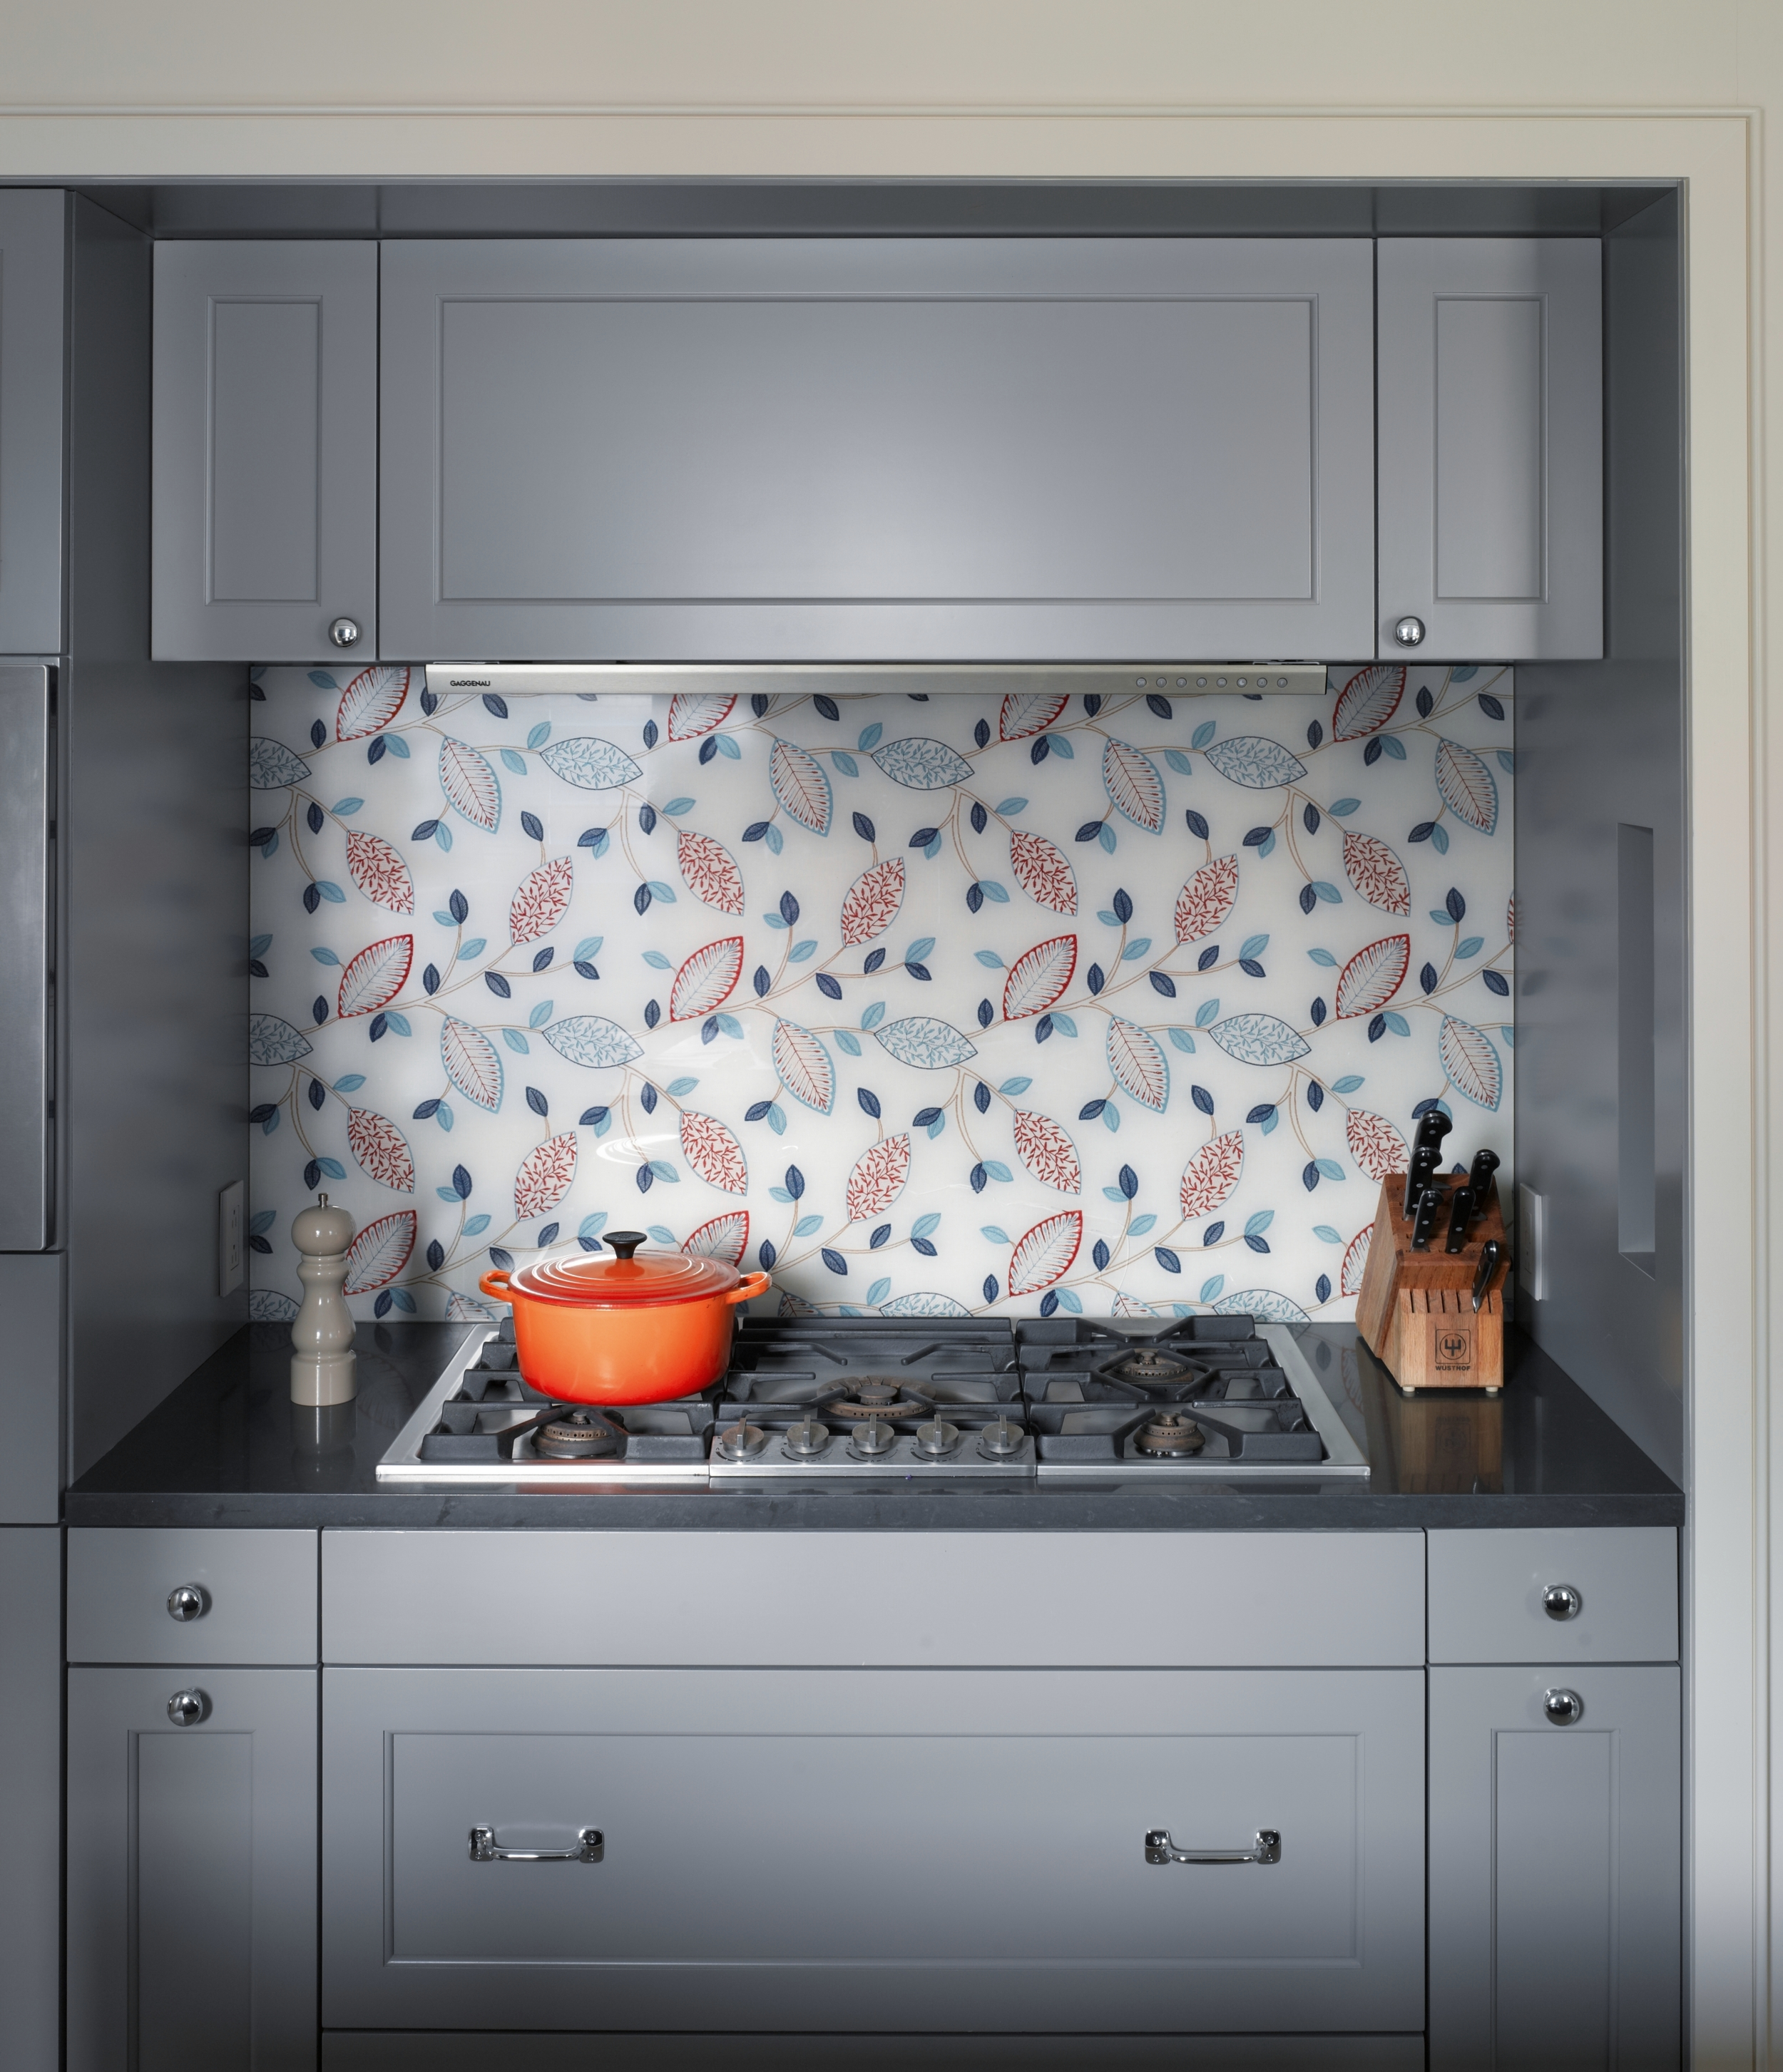 Lincoln Apartment Kitchen Cooktop with Backsplash